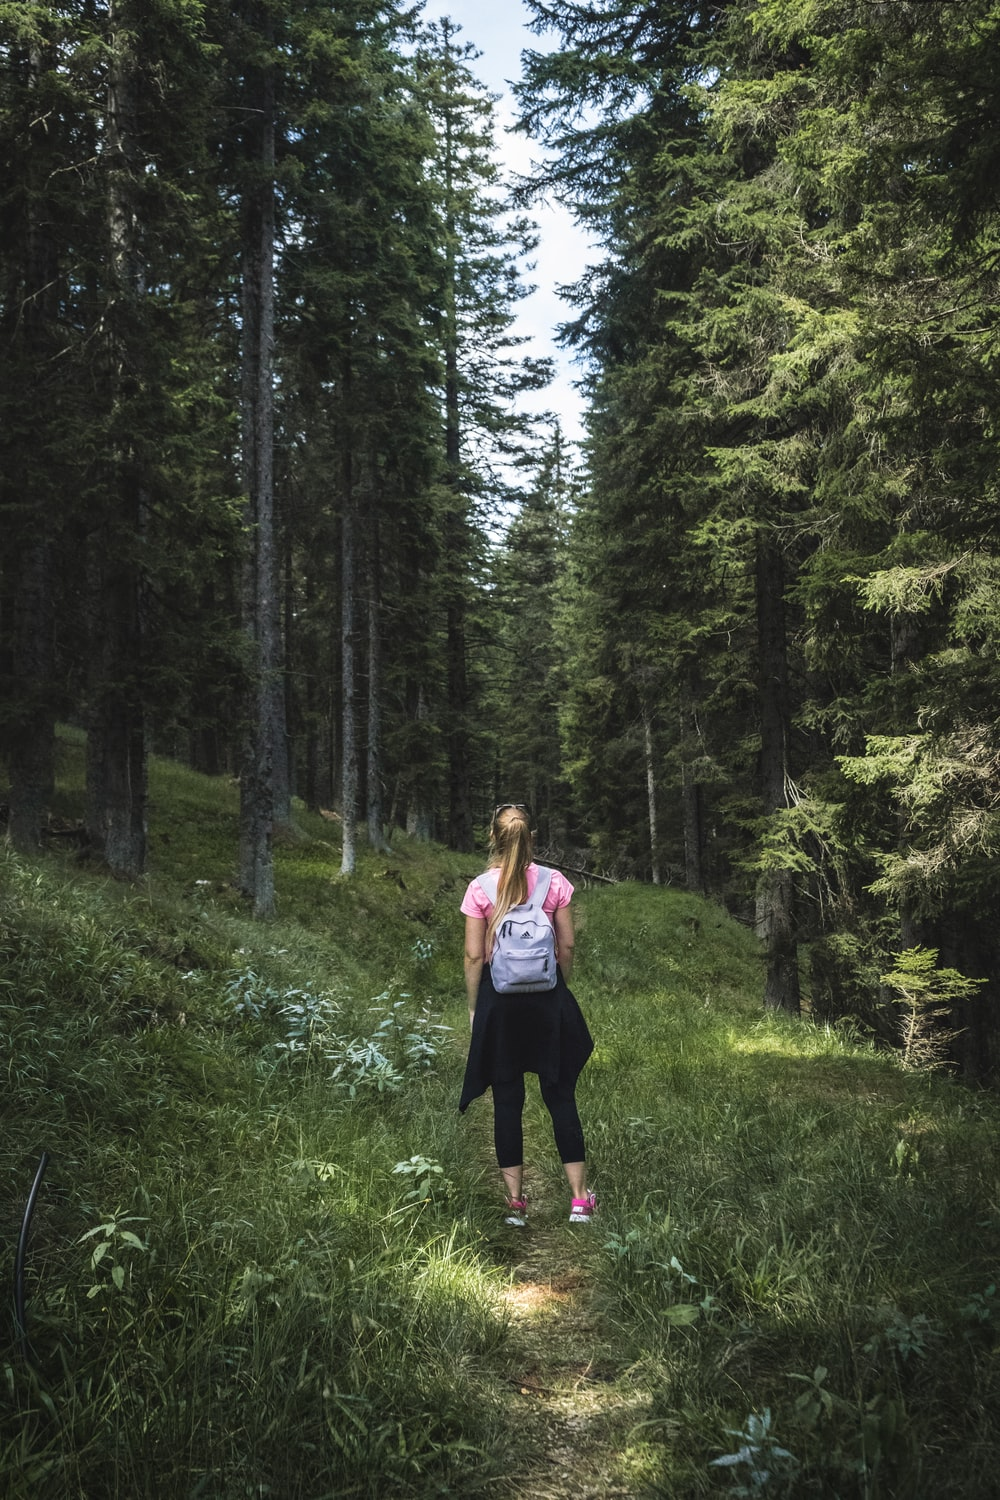 woman carrying backpack on forest